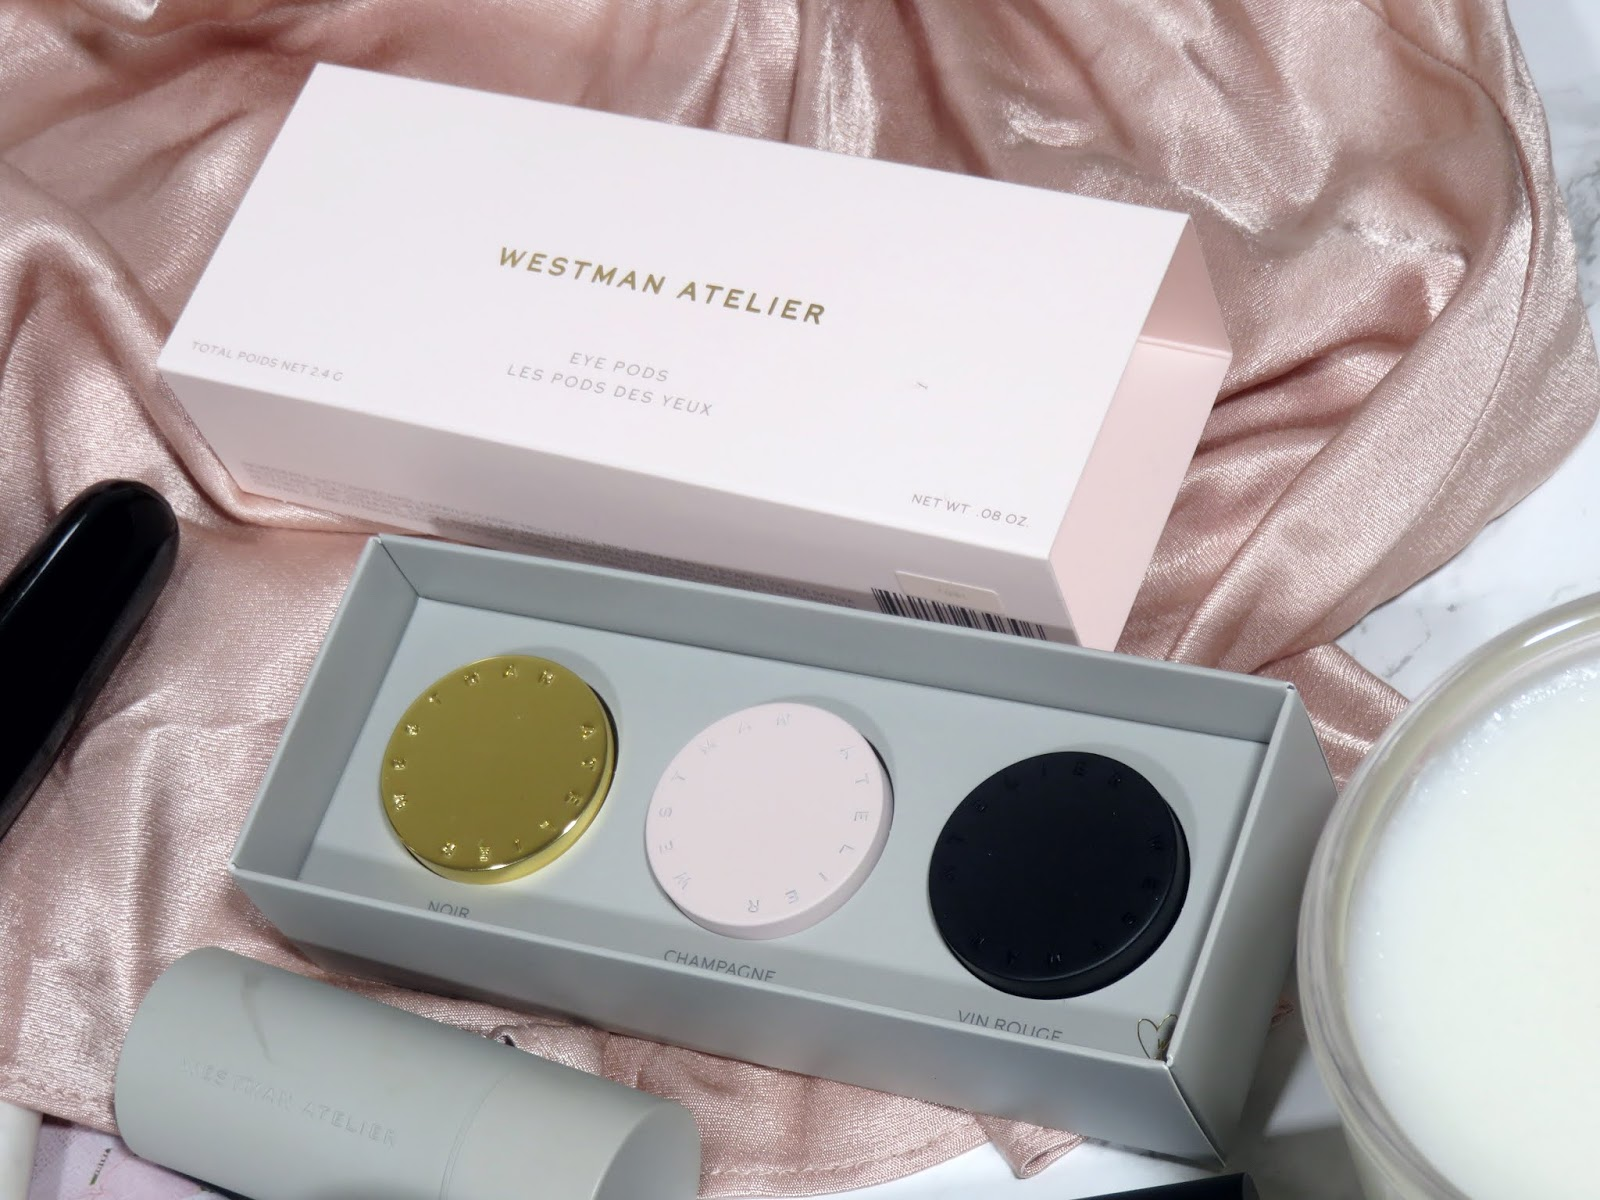 Westman Atelier Eye Pods in Les Nuits Review and Swatches